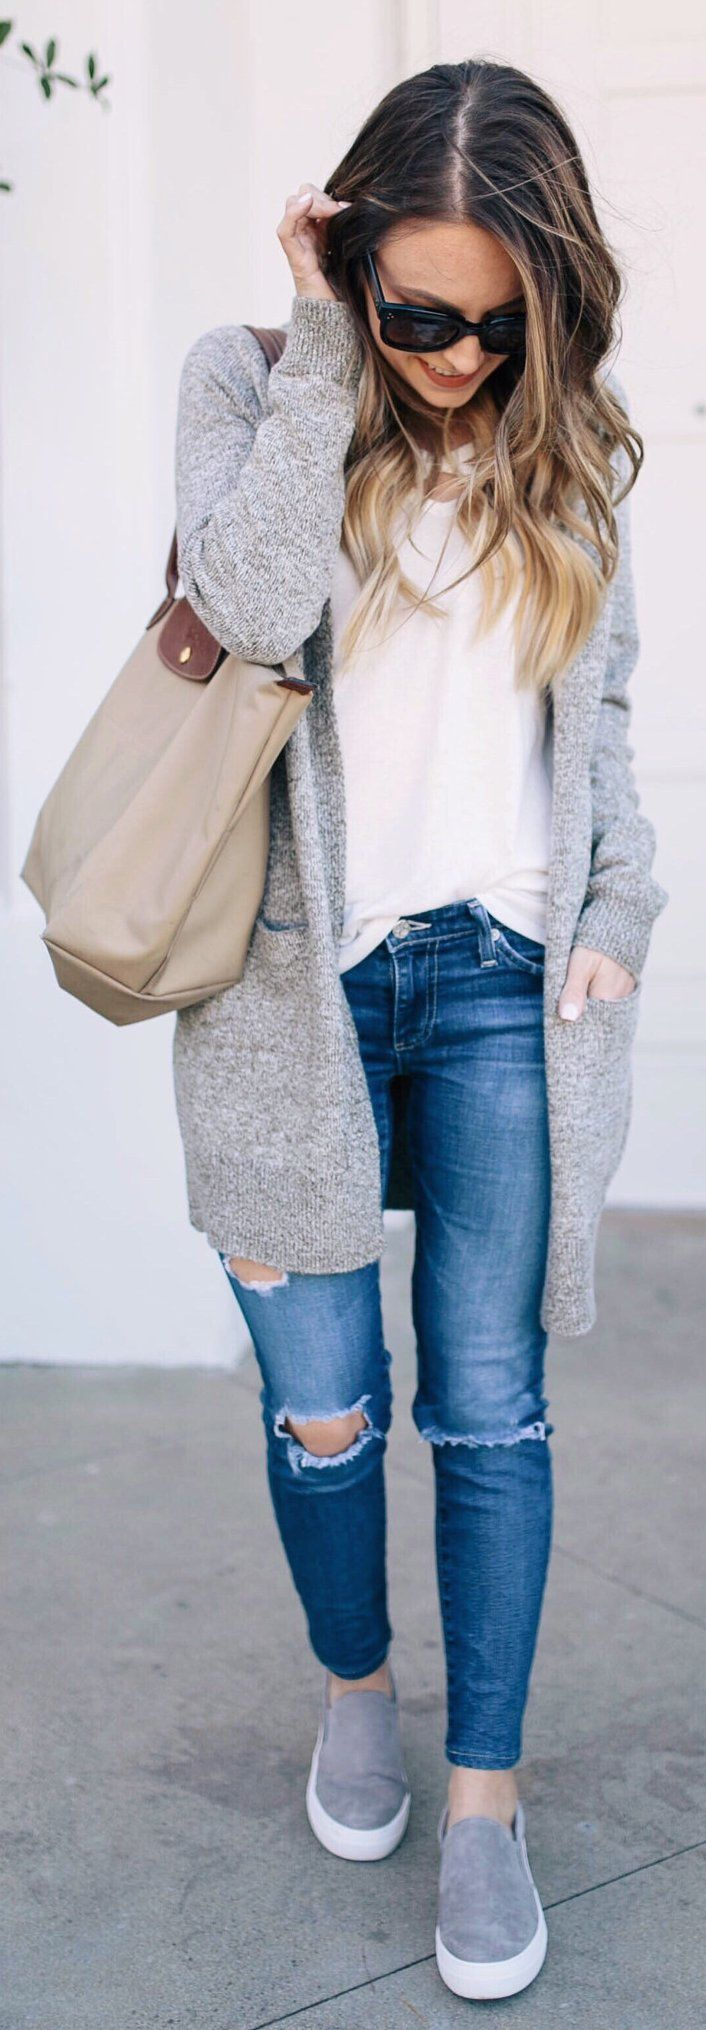 Grey Cardigan / White Top / Destroyed Skinny Jeans / Grey Sneakers